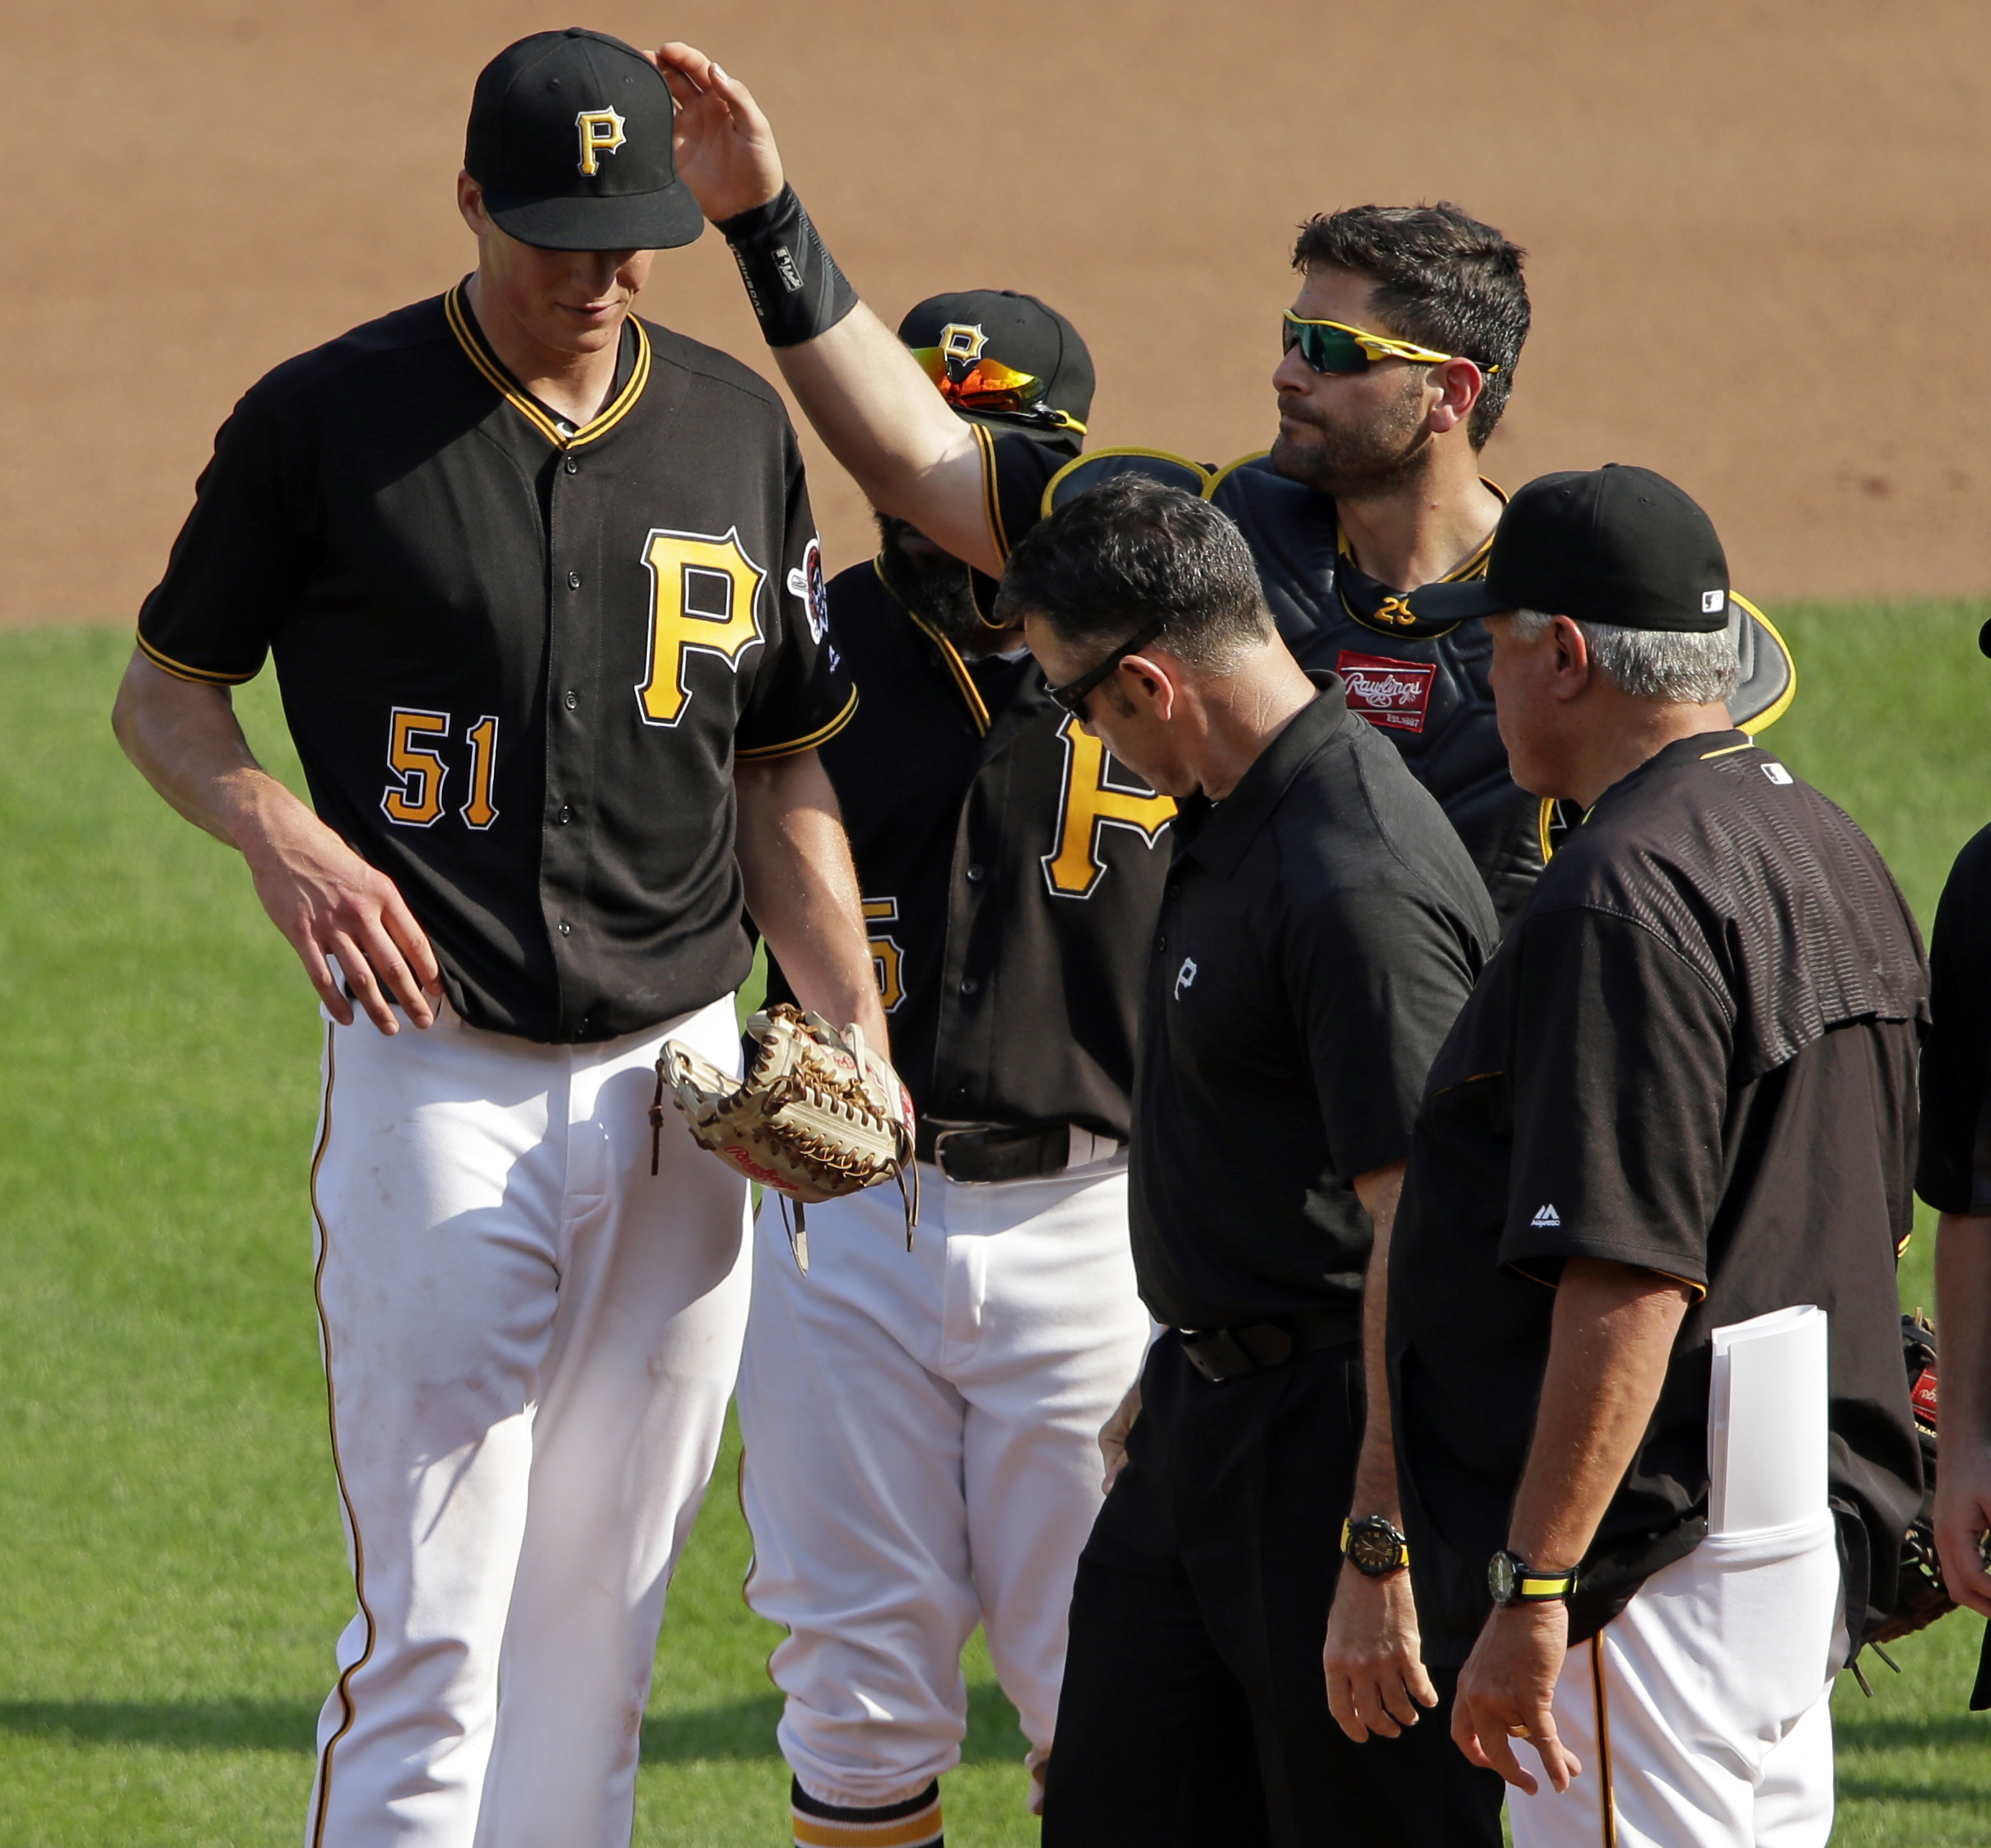 Pittsburgh Pirates starting pitcher Tyler Glasnow (51) walks off the mound with shoulder discomfort during the fourth inning of a baseball game against the Philadelphia Phillies in Pittsburgh, Saturday, July 23, 2016. The Pirates won 7-4. (AP Photo/Gene J